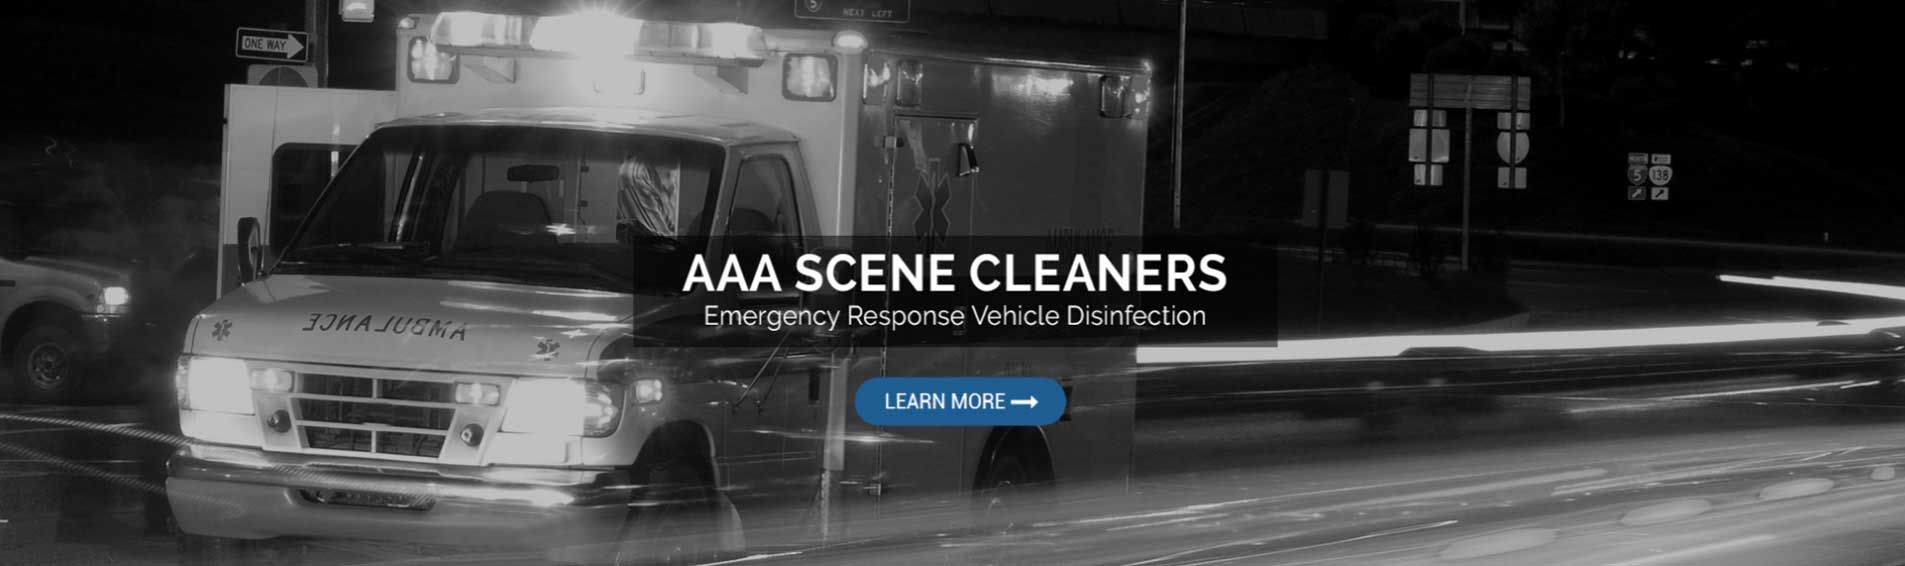 emergency response vehicle disinfection